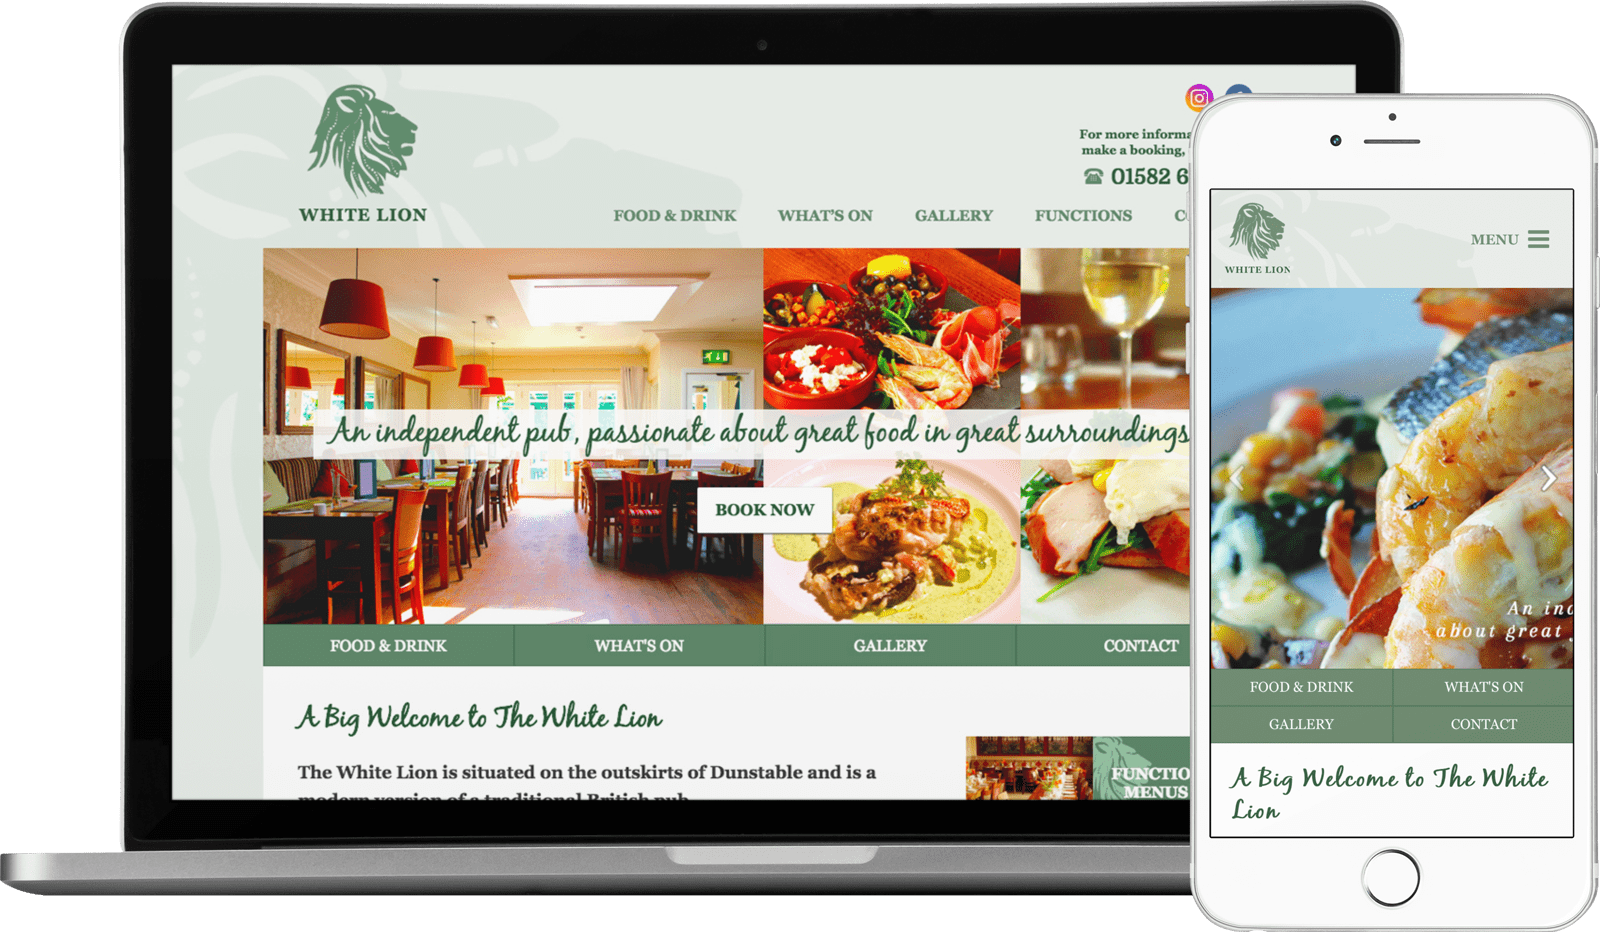 Macbook / iPhone view of The White Lion Pub website